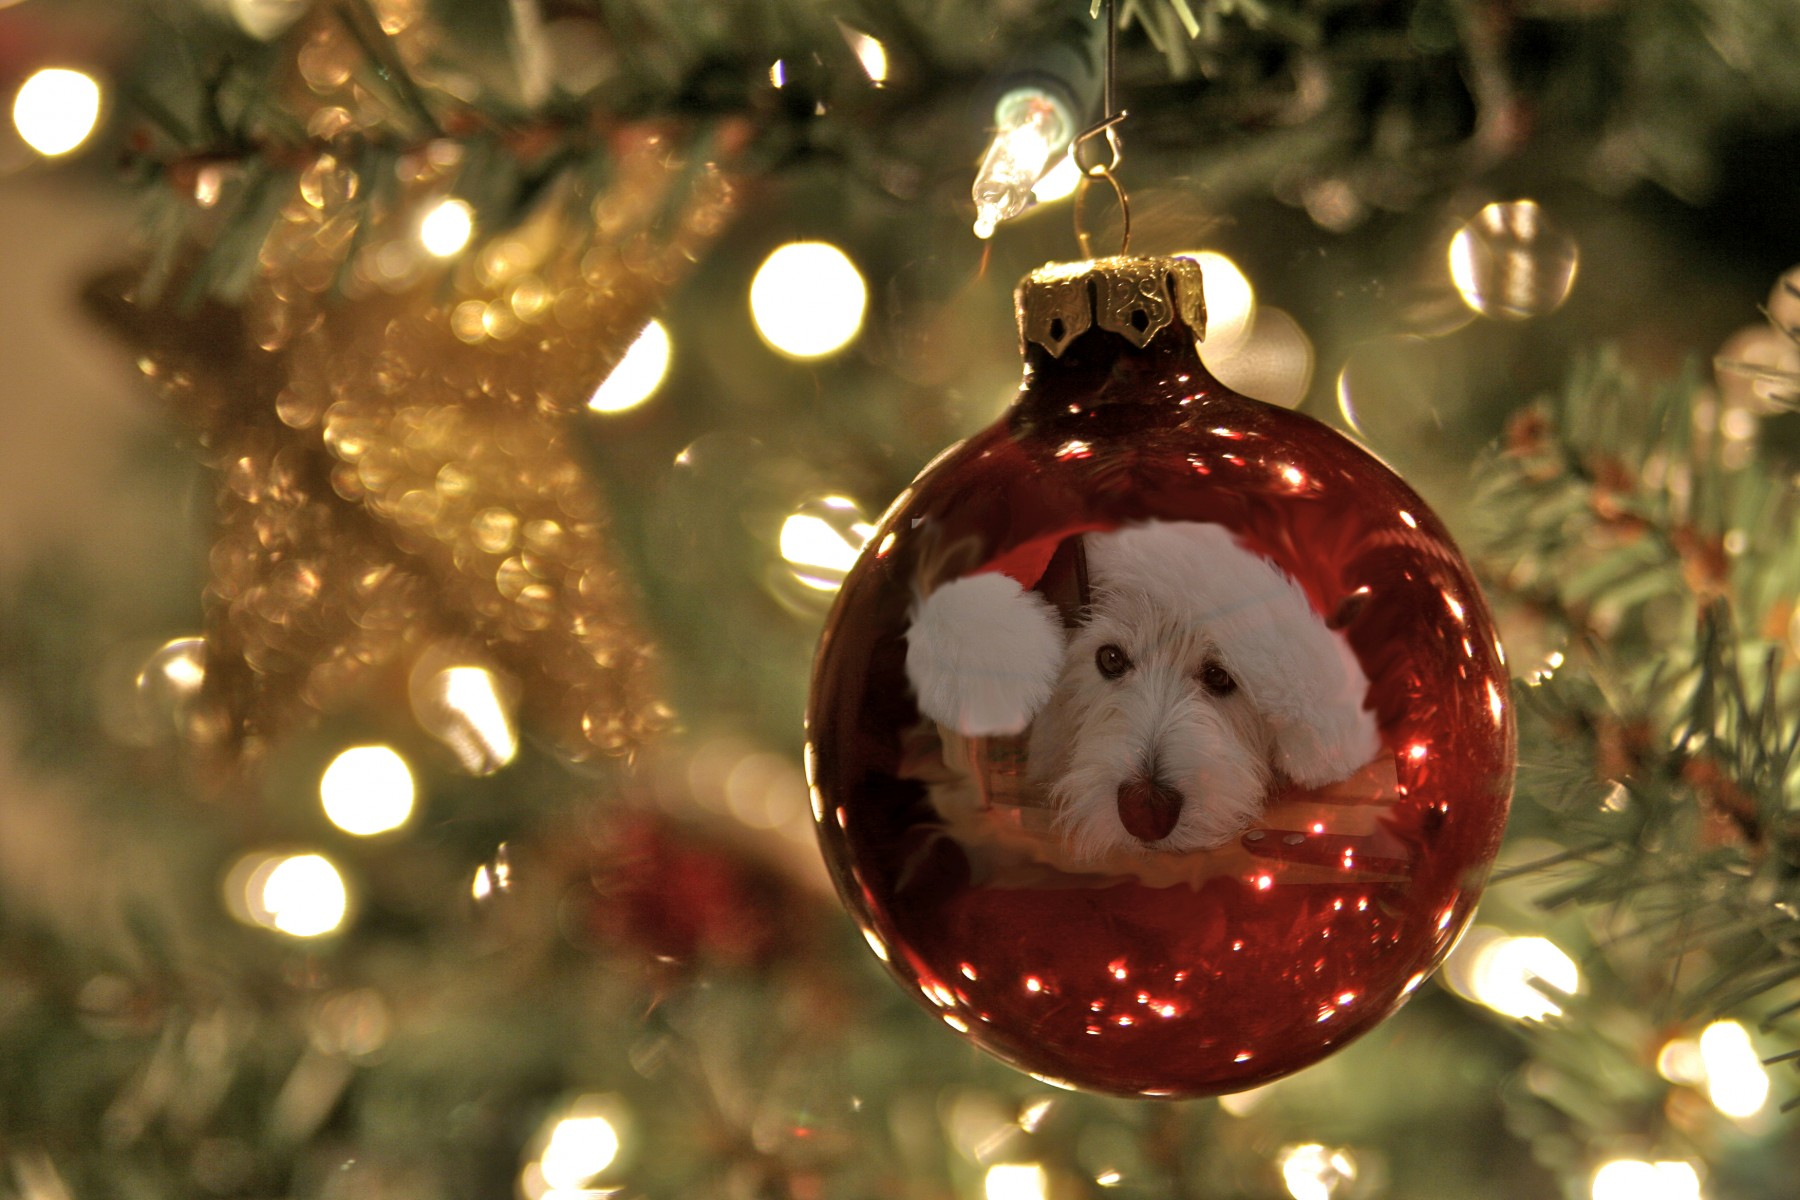 West Highland Terrier reflection on a Christmas tree ornament